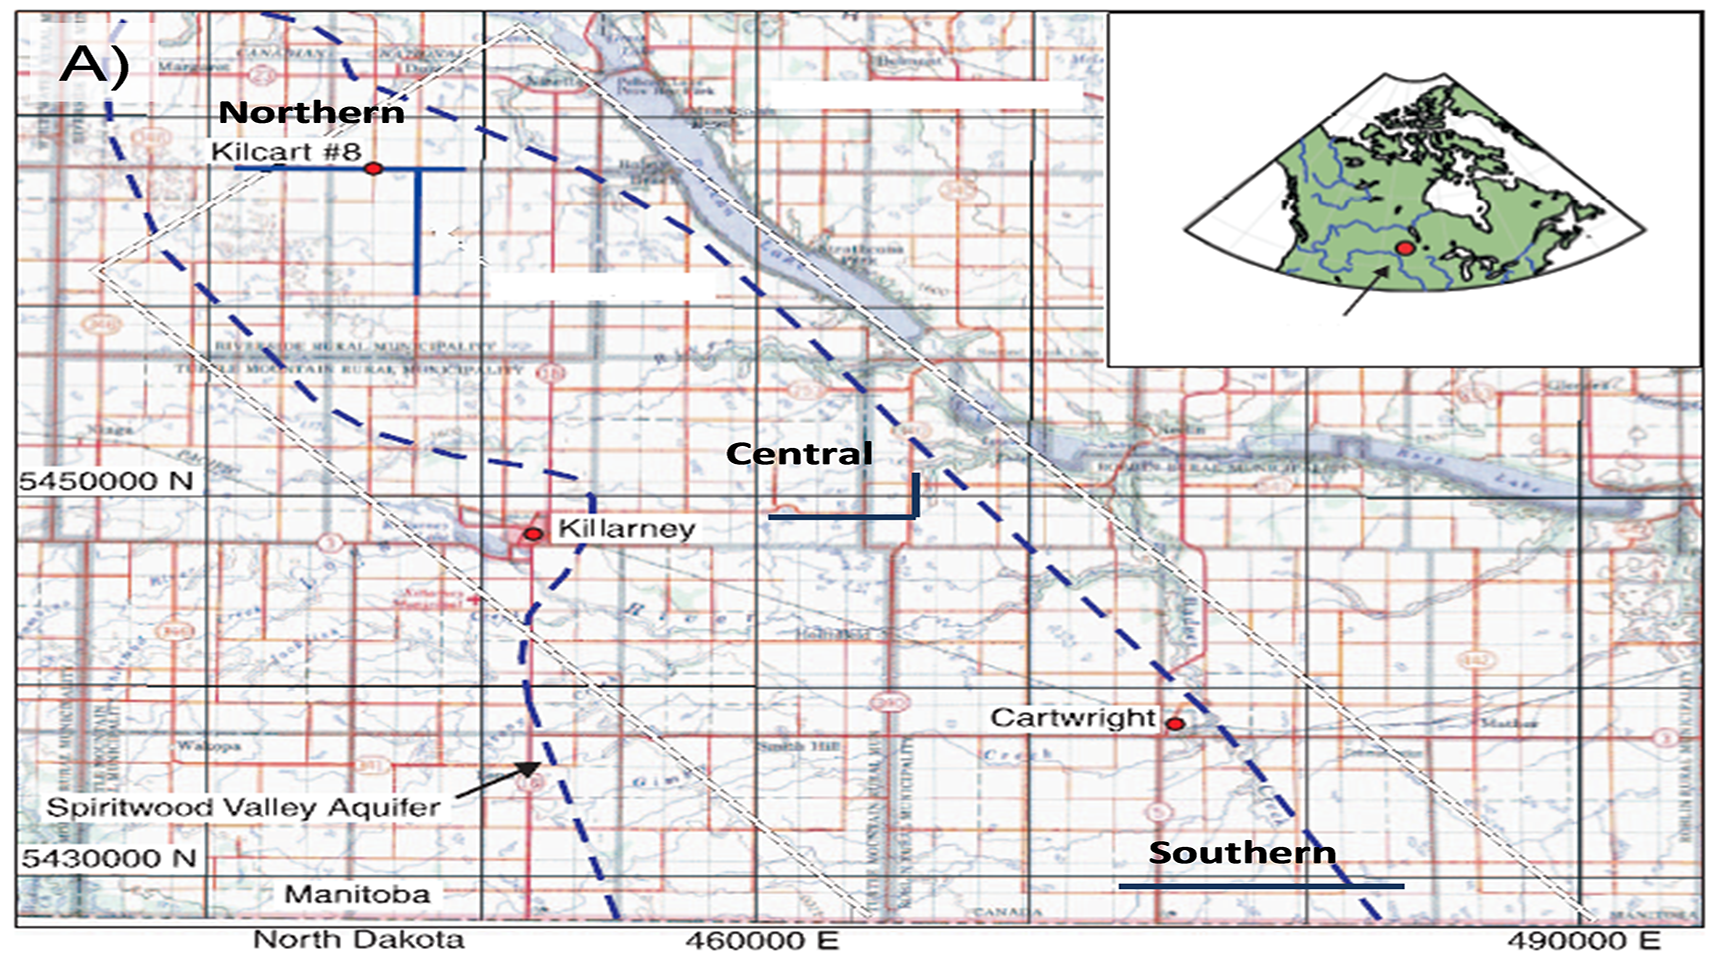 Figure 1: Spiritwood Valley location